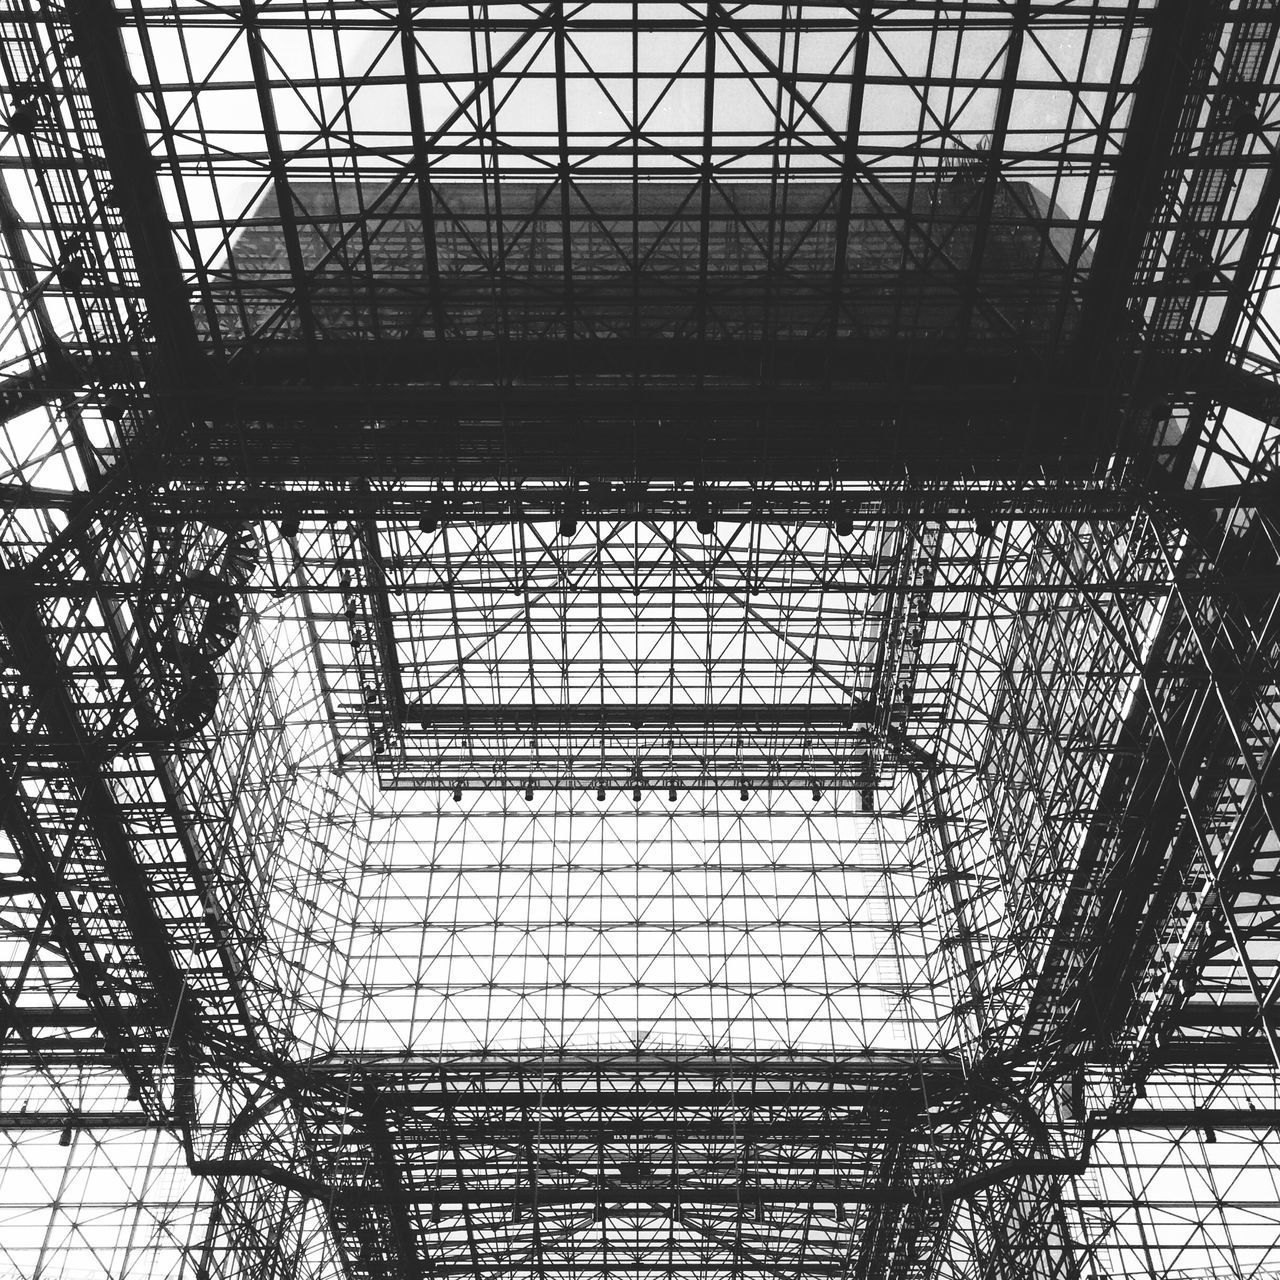 Javits Convention Center, New York City, USA. Photo by Tom Bland. Built Structure Architecture No People Metal Glass Roof Ceiling Looking Up IPhone IPhoneography Javits Center NYC New York City New York Lines Black And White Monochrome Architectural Glass Ceiling Graphic Convention Center Long Goodbye